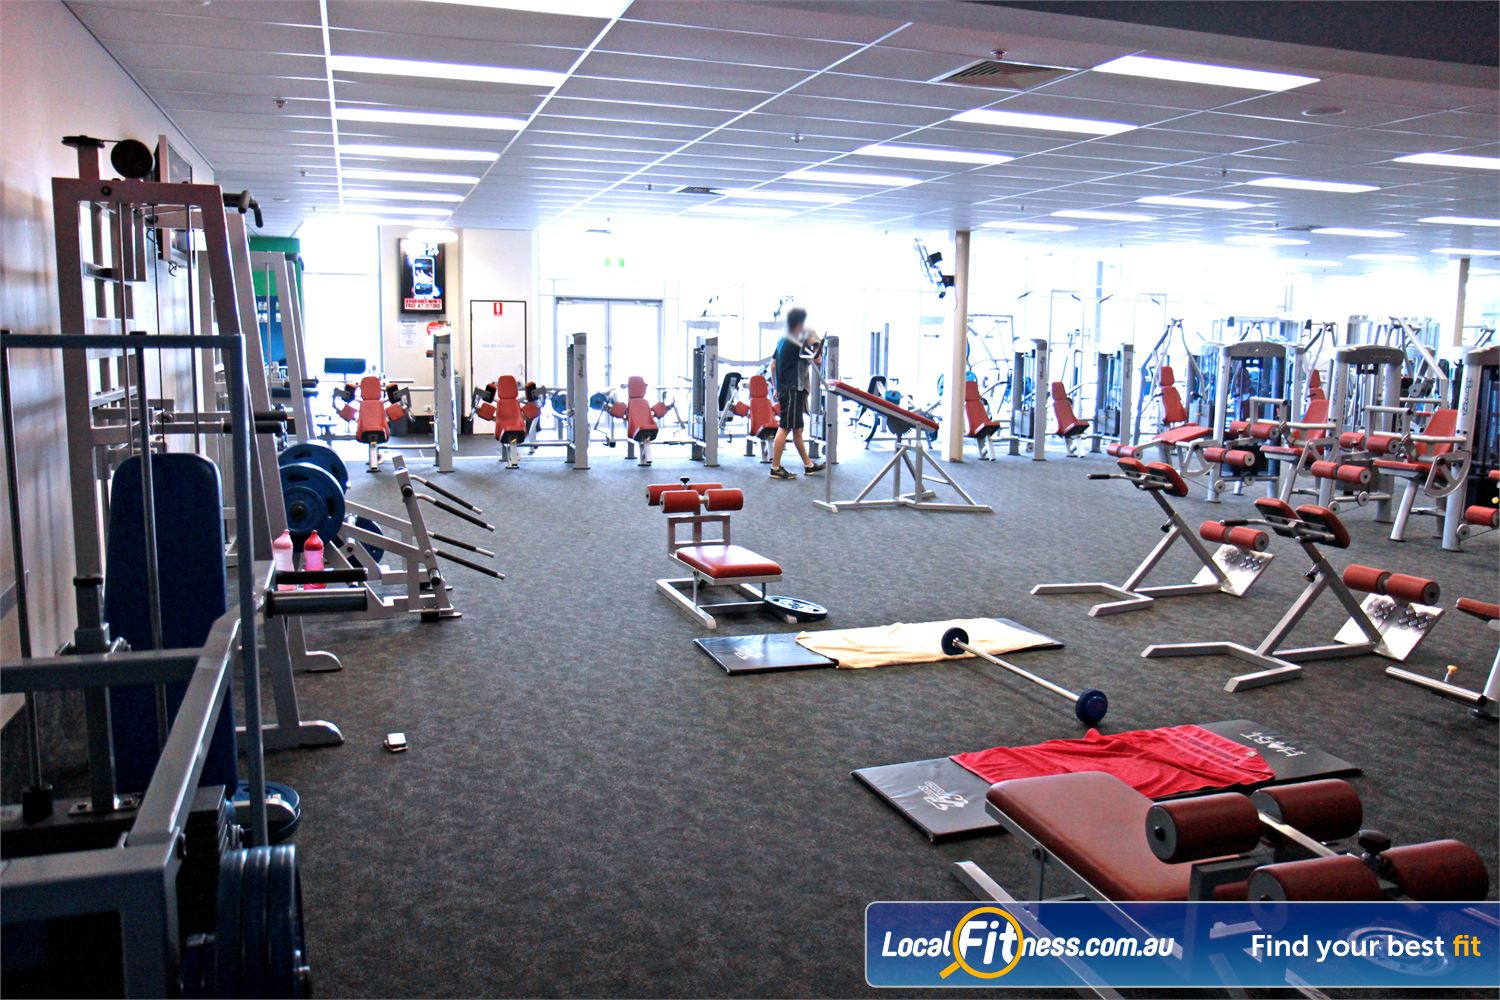 Goodlife Health Clubs Ipswich The Ipswich gym includes an extensive selection of equipment from Calgym Synergy.